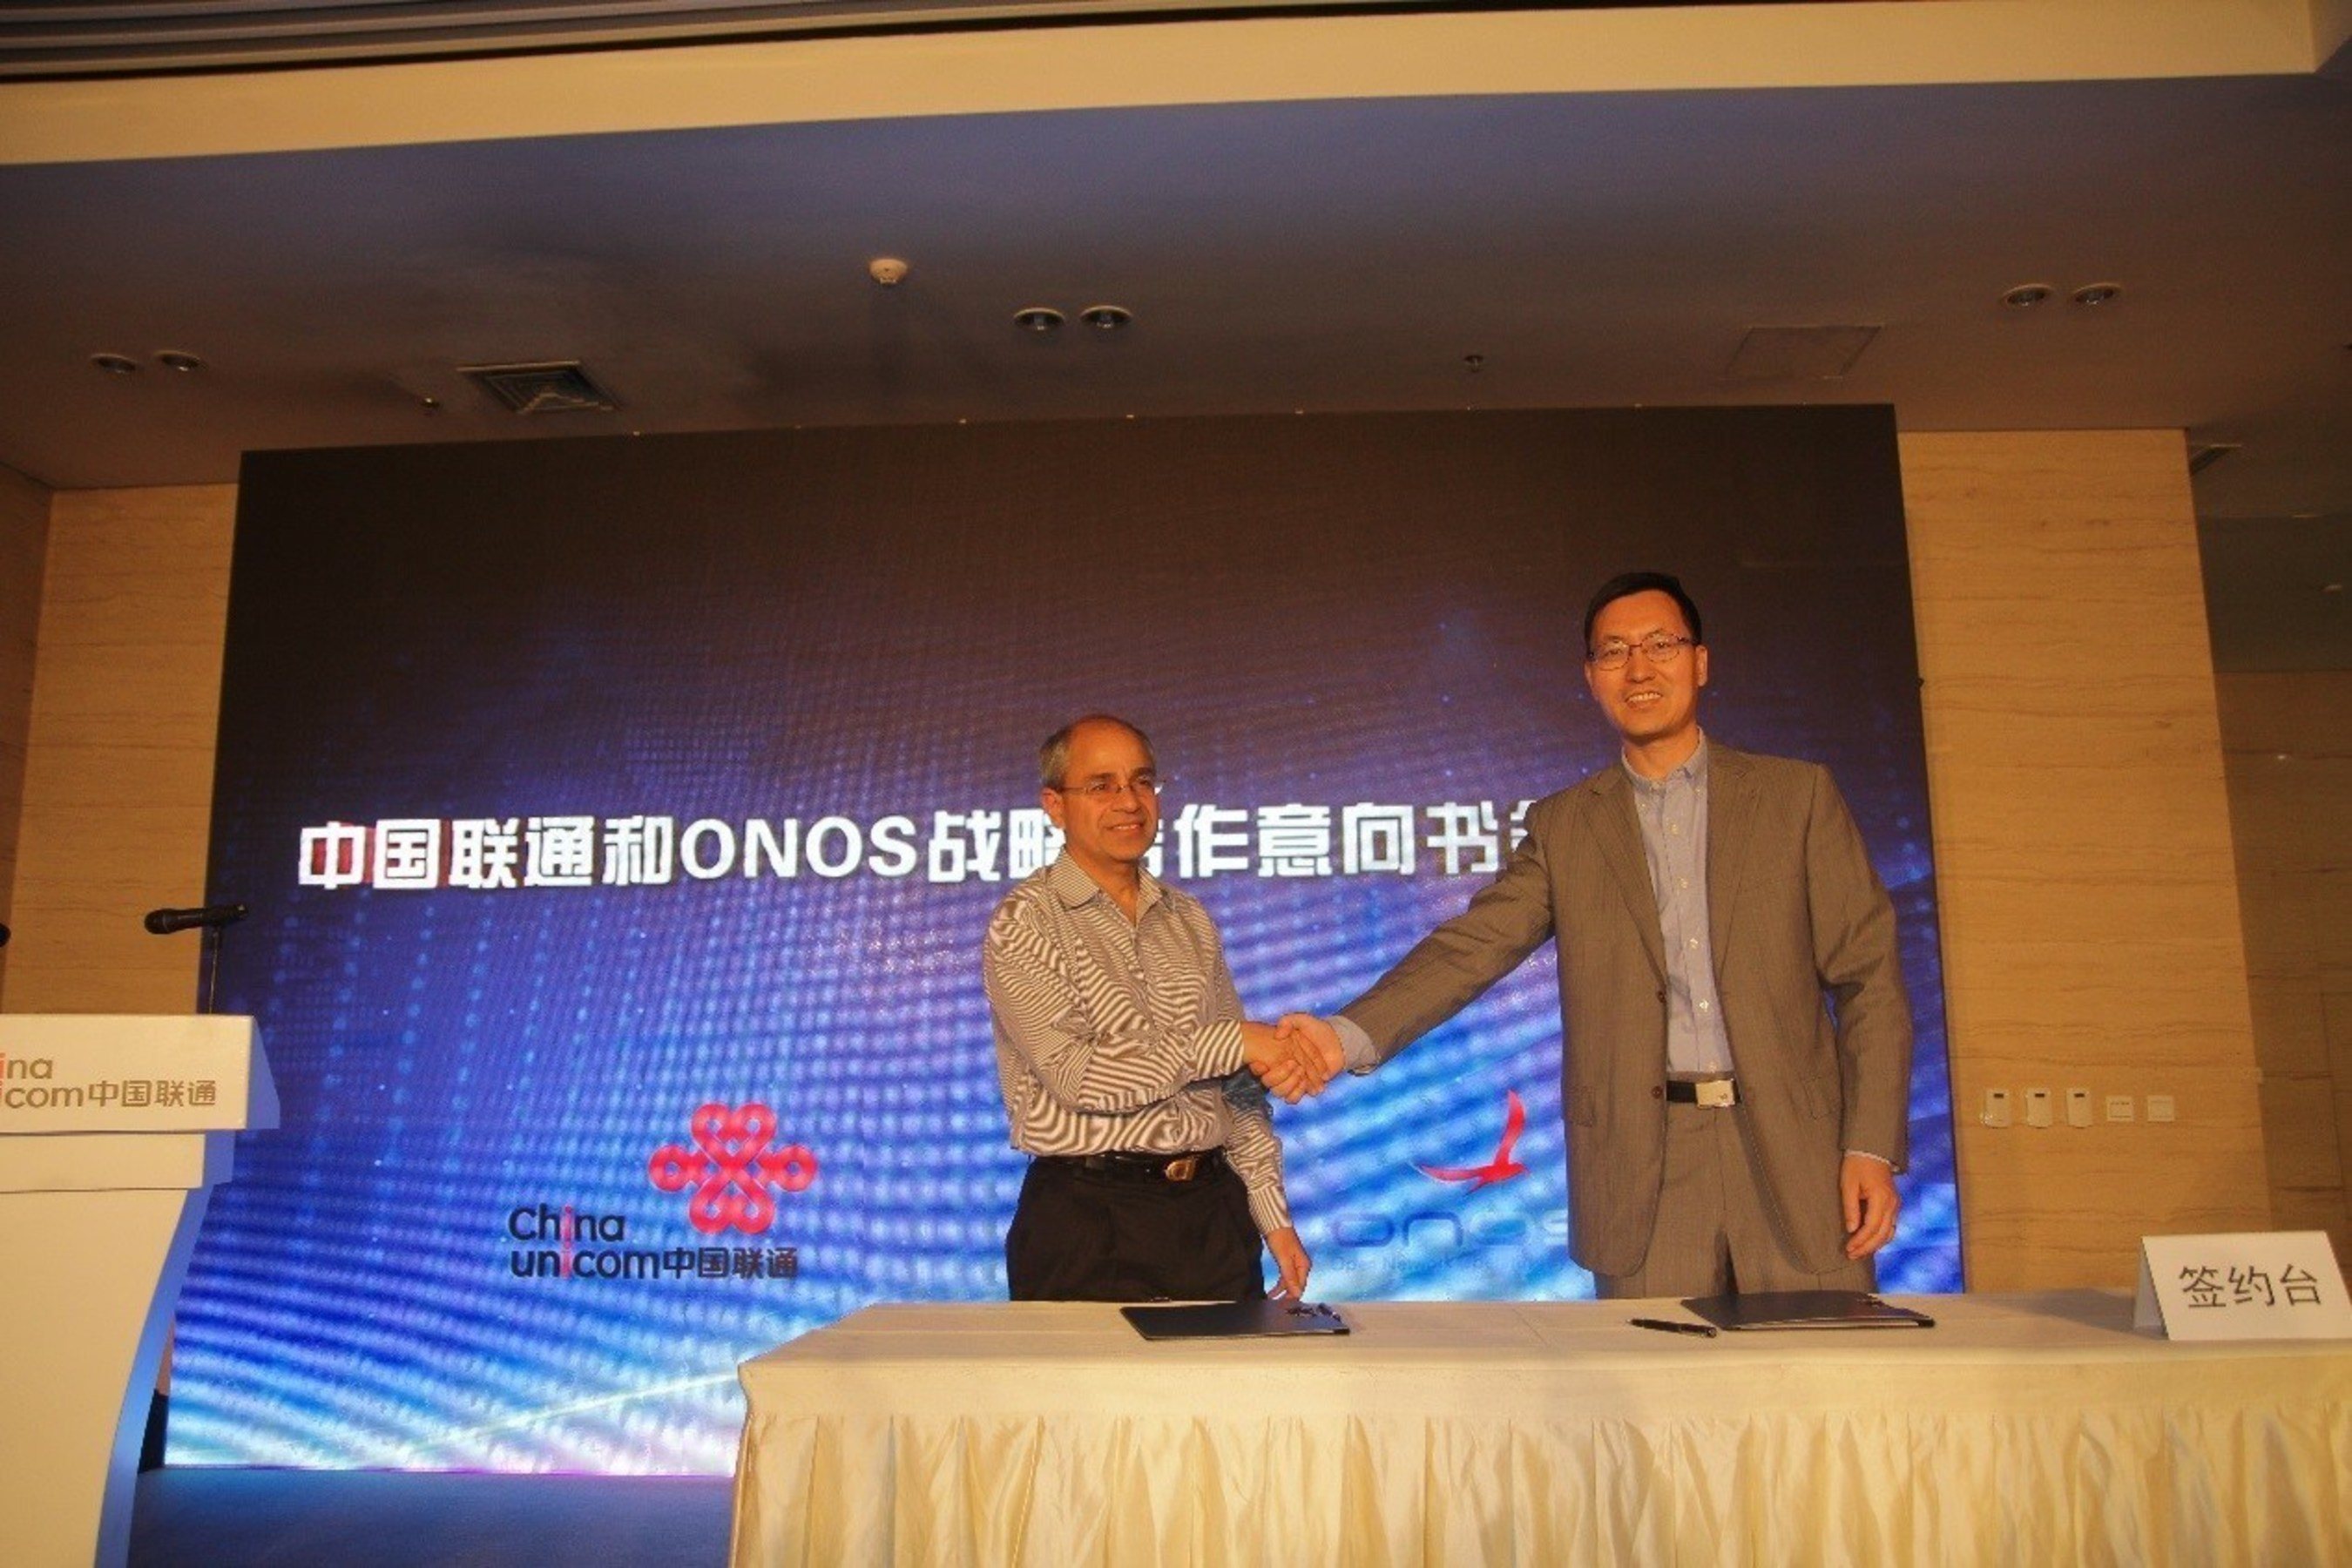 China Unicom and ONOS Sign Letter of Intent at the 2015 China SDN/NFV Conference